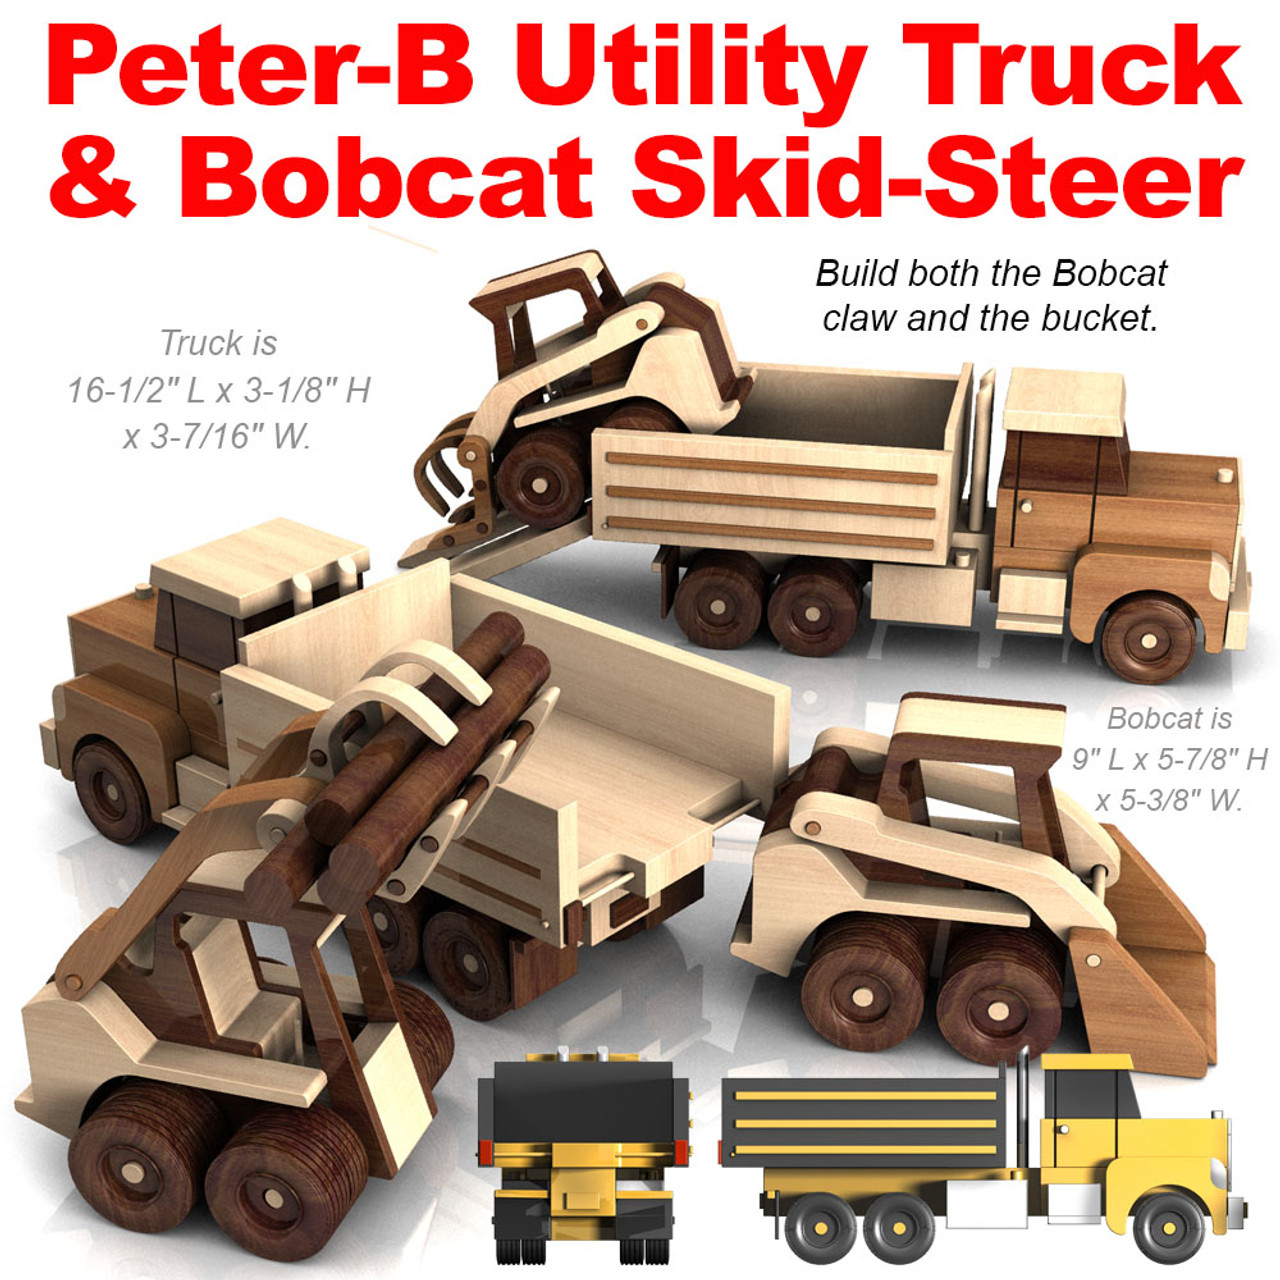 peter-b utility truck and bobcat skid-steer wood toy plans (2 pdf downloads)